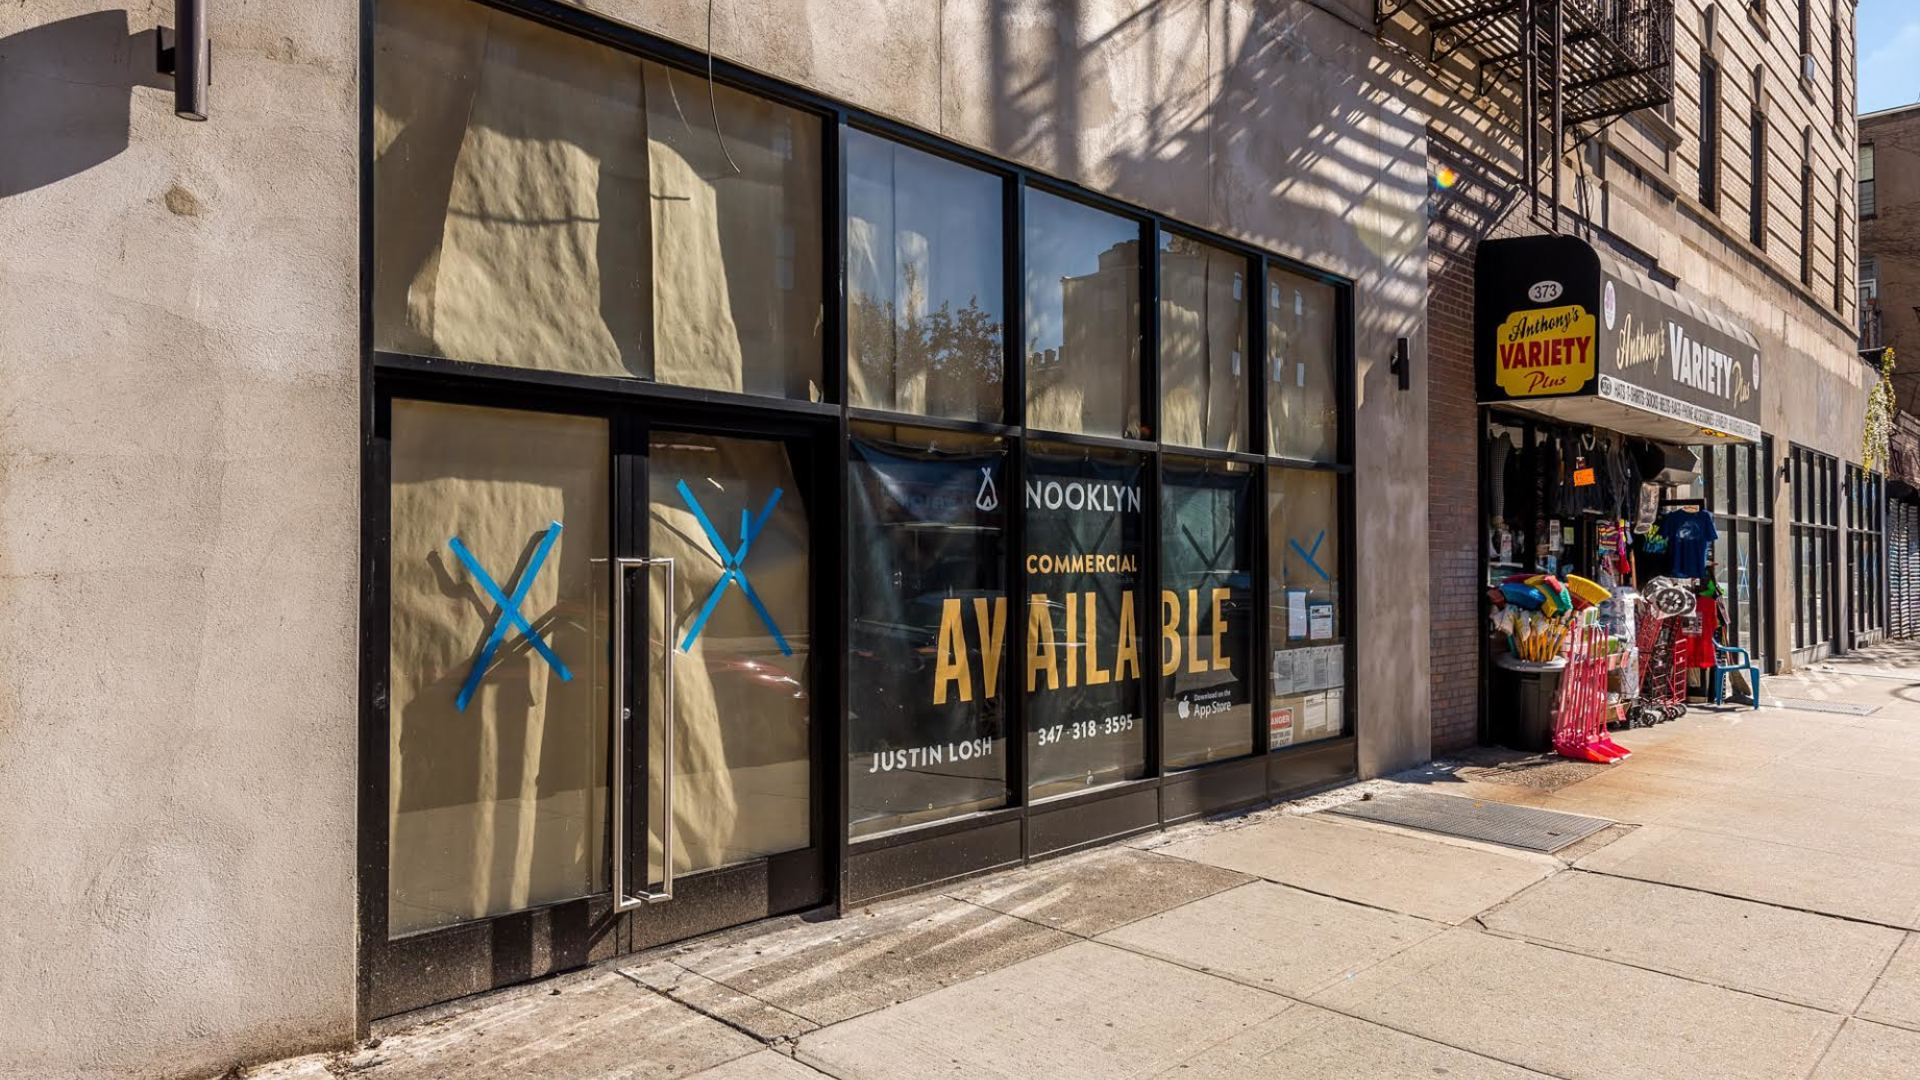 A $3,575 commercial property in Bed-Stuy, Brooklyn - Nooklyn